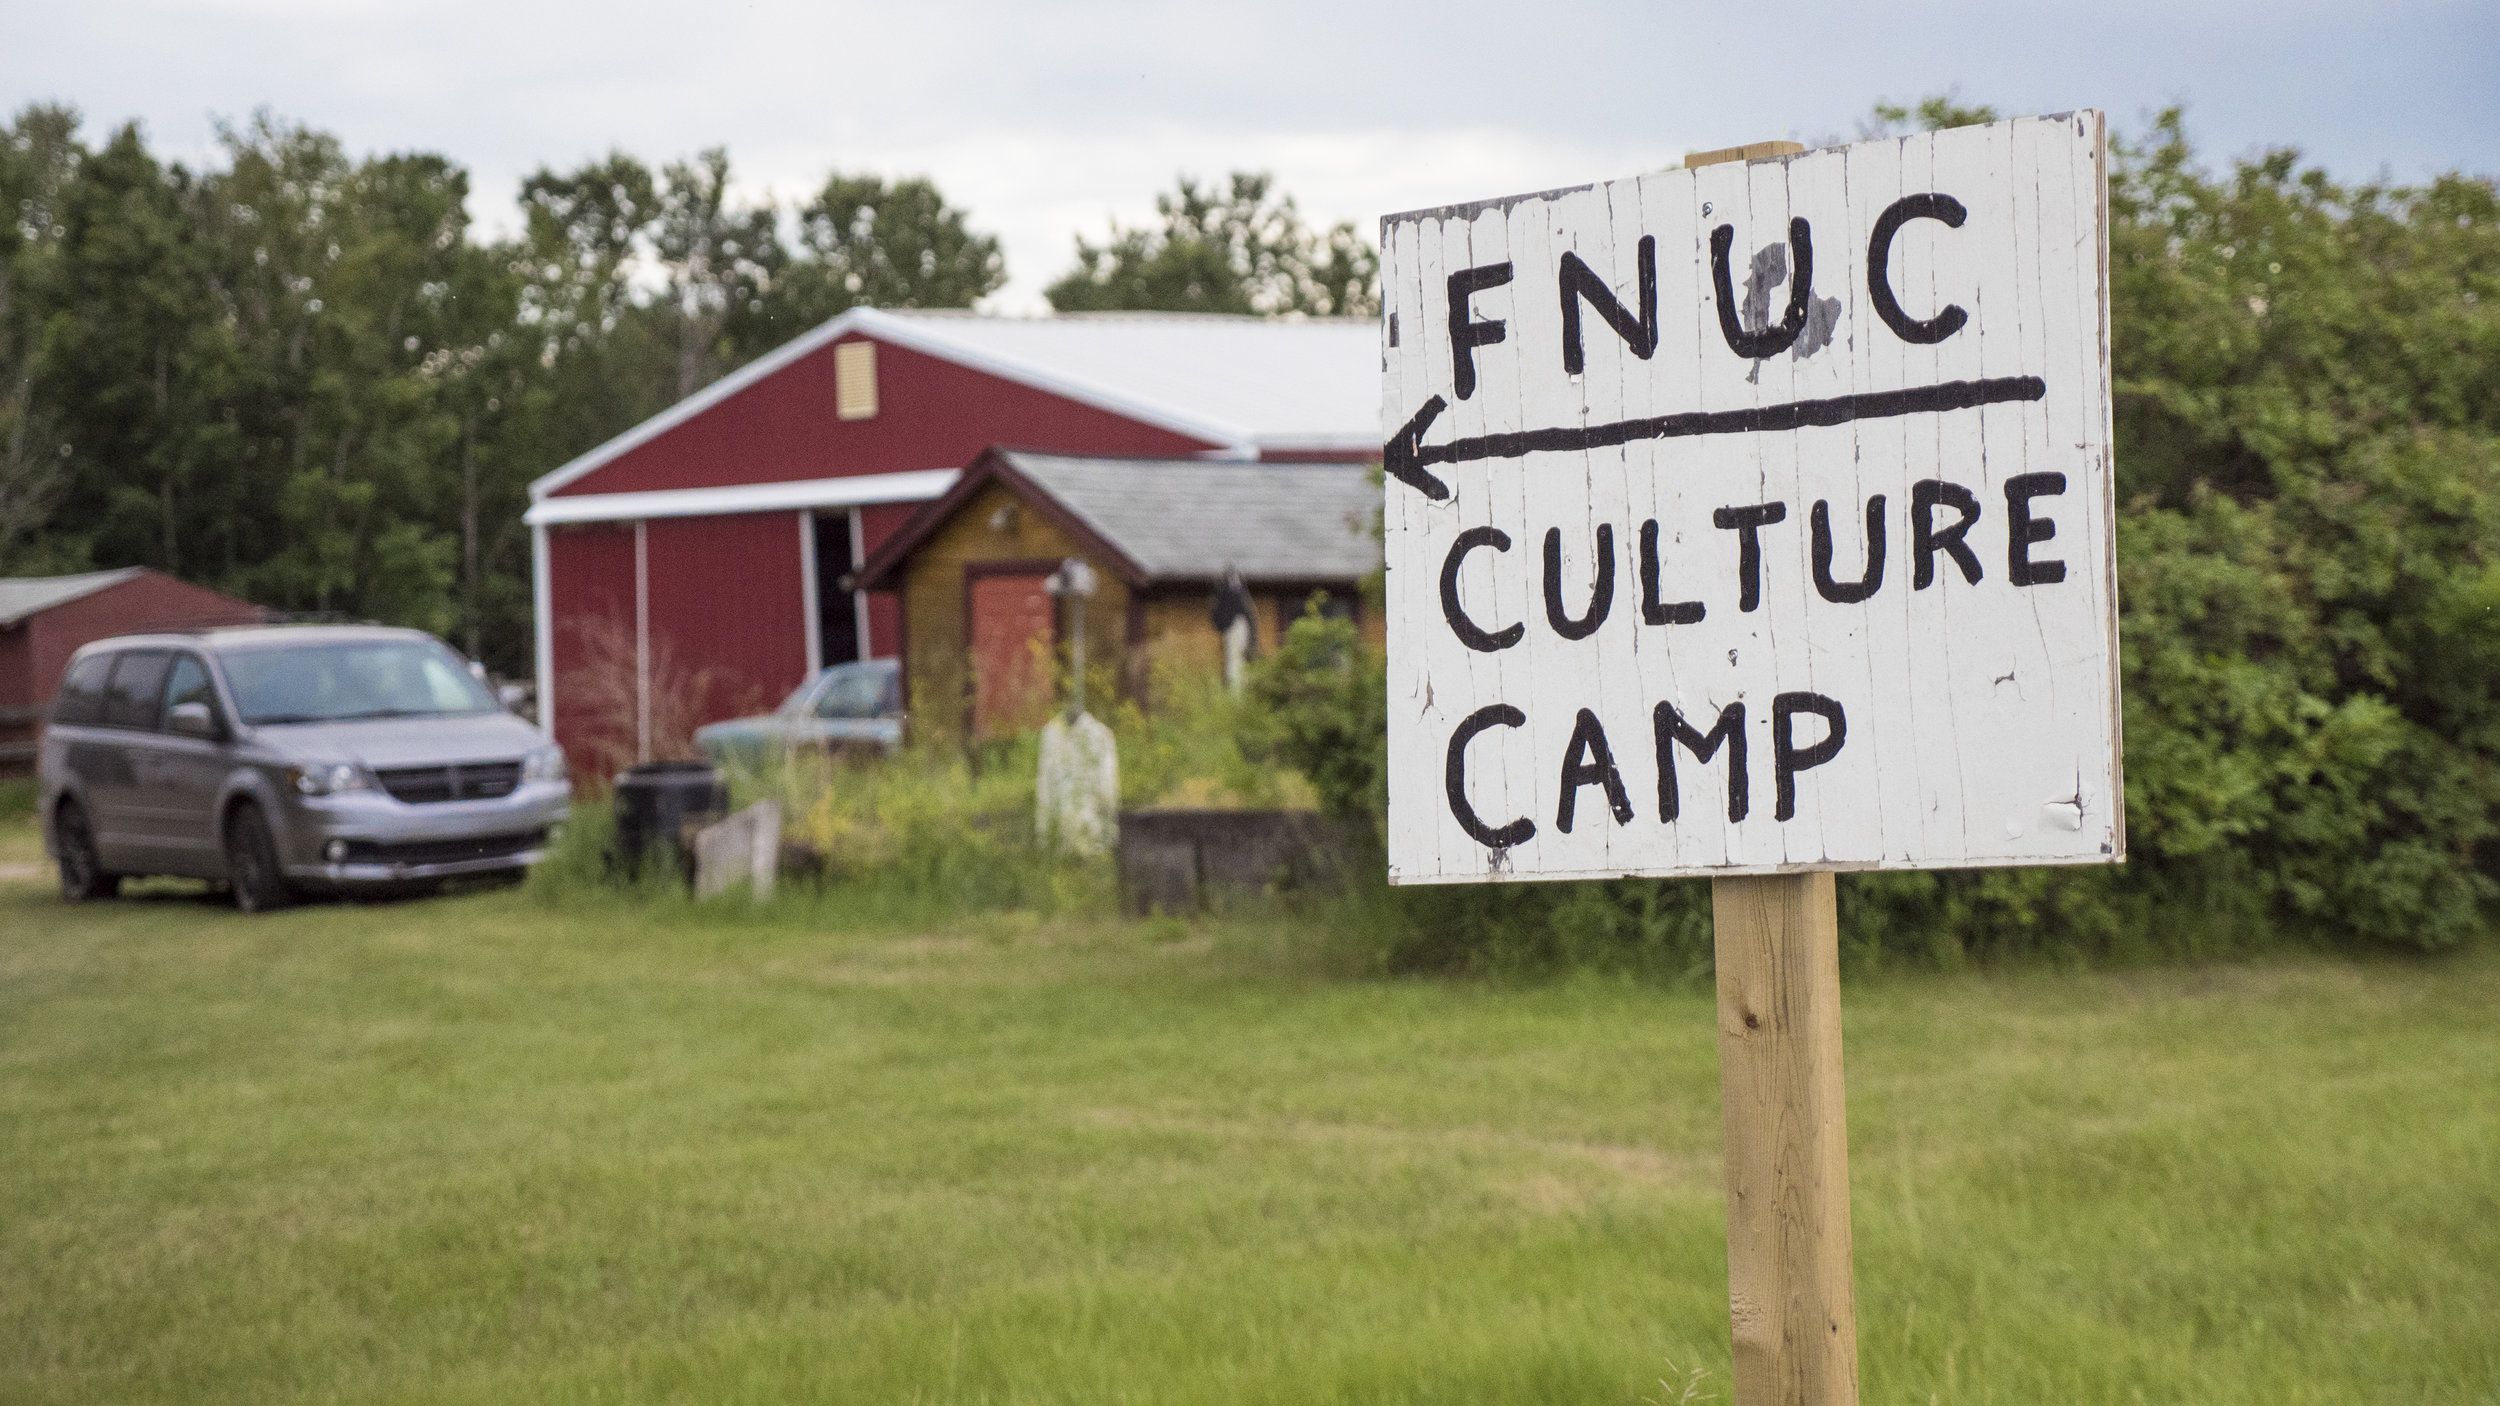 CultureCampSign-1.jpg